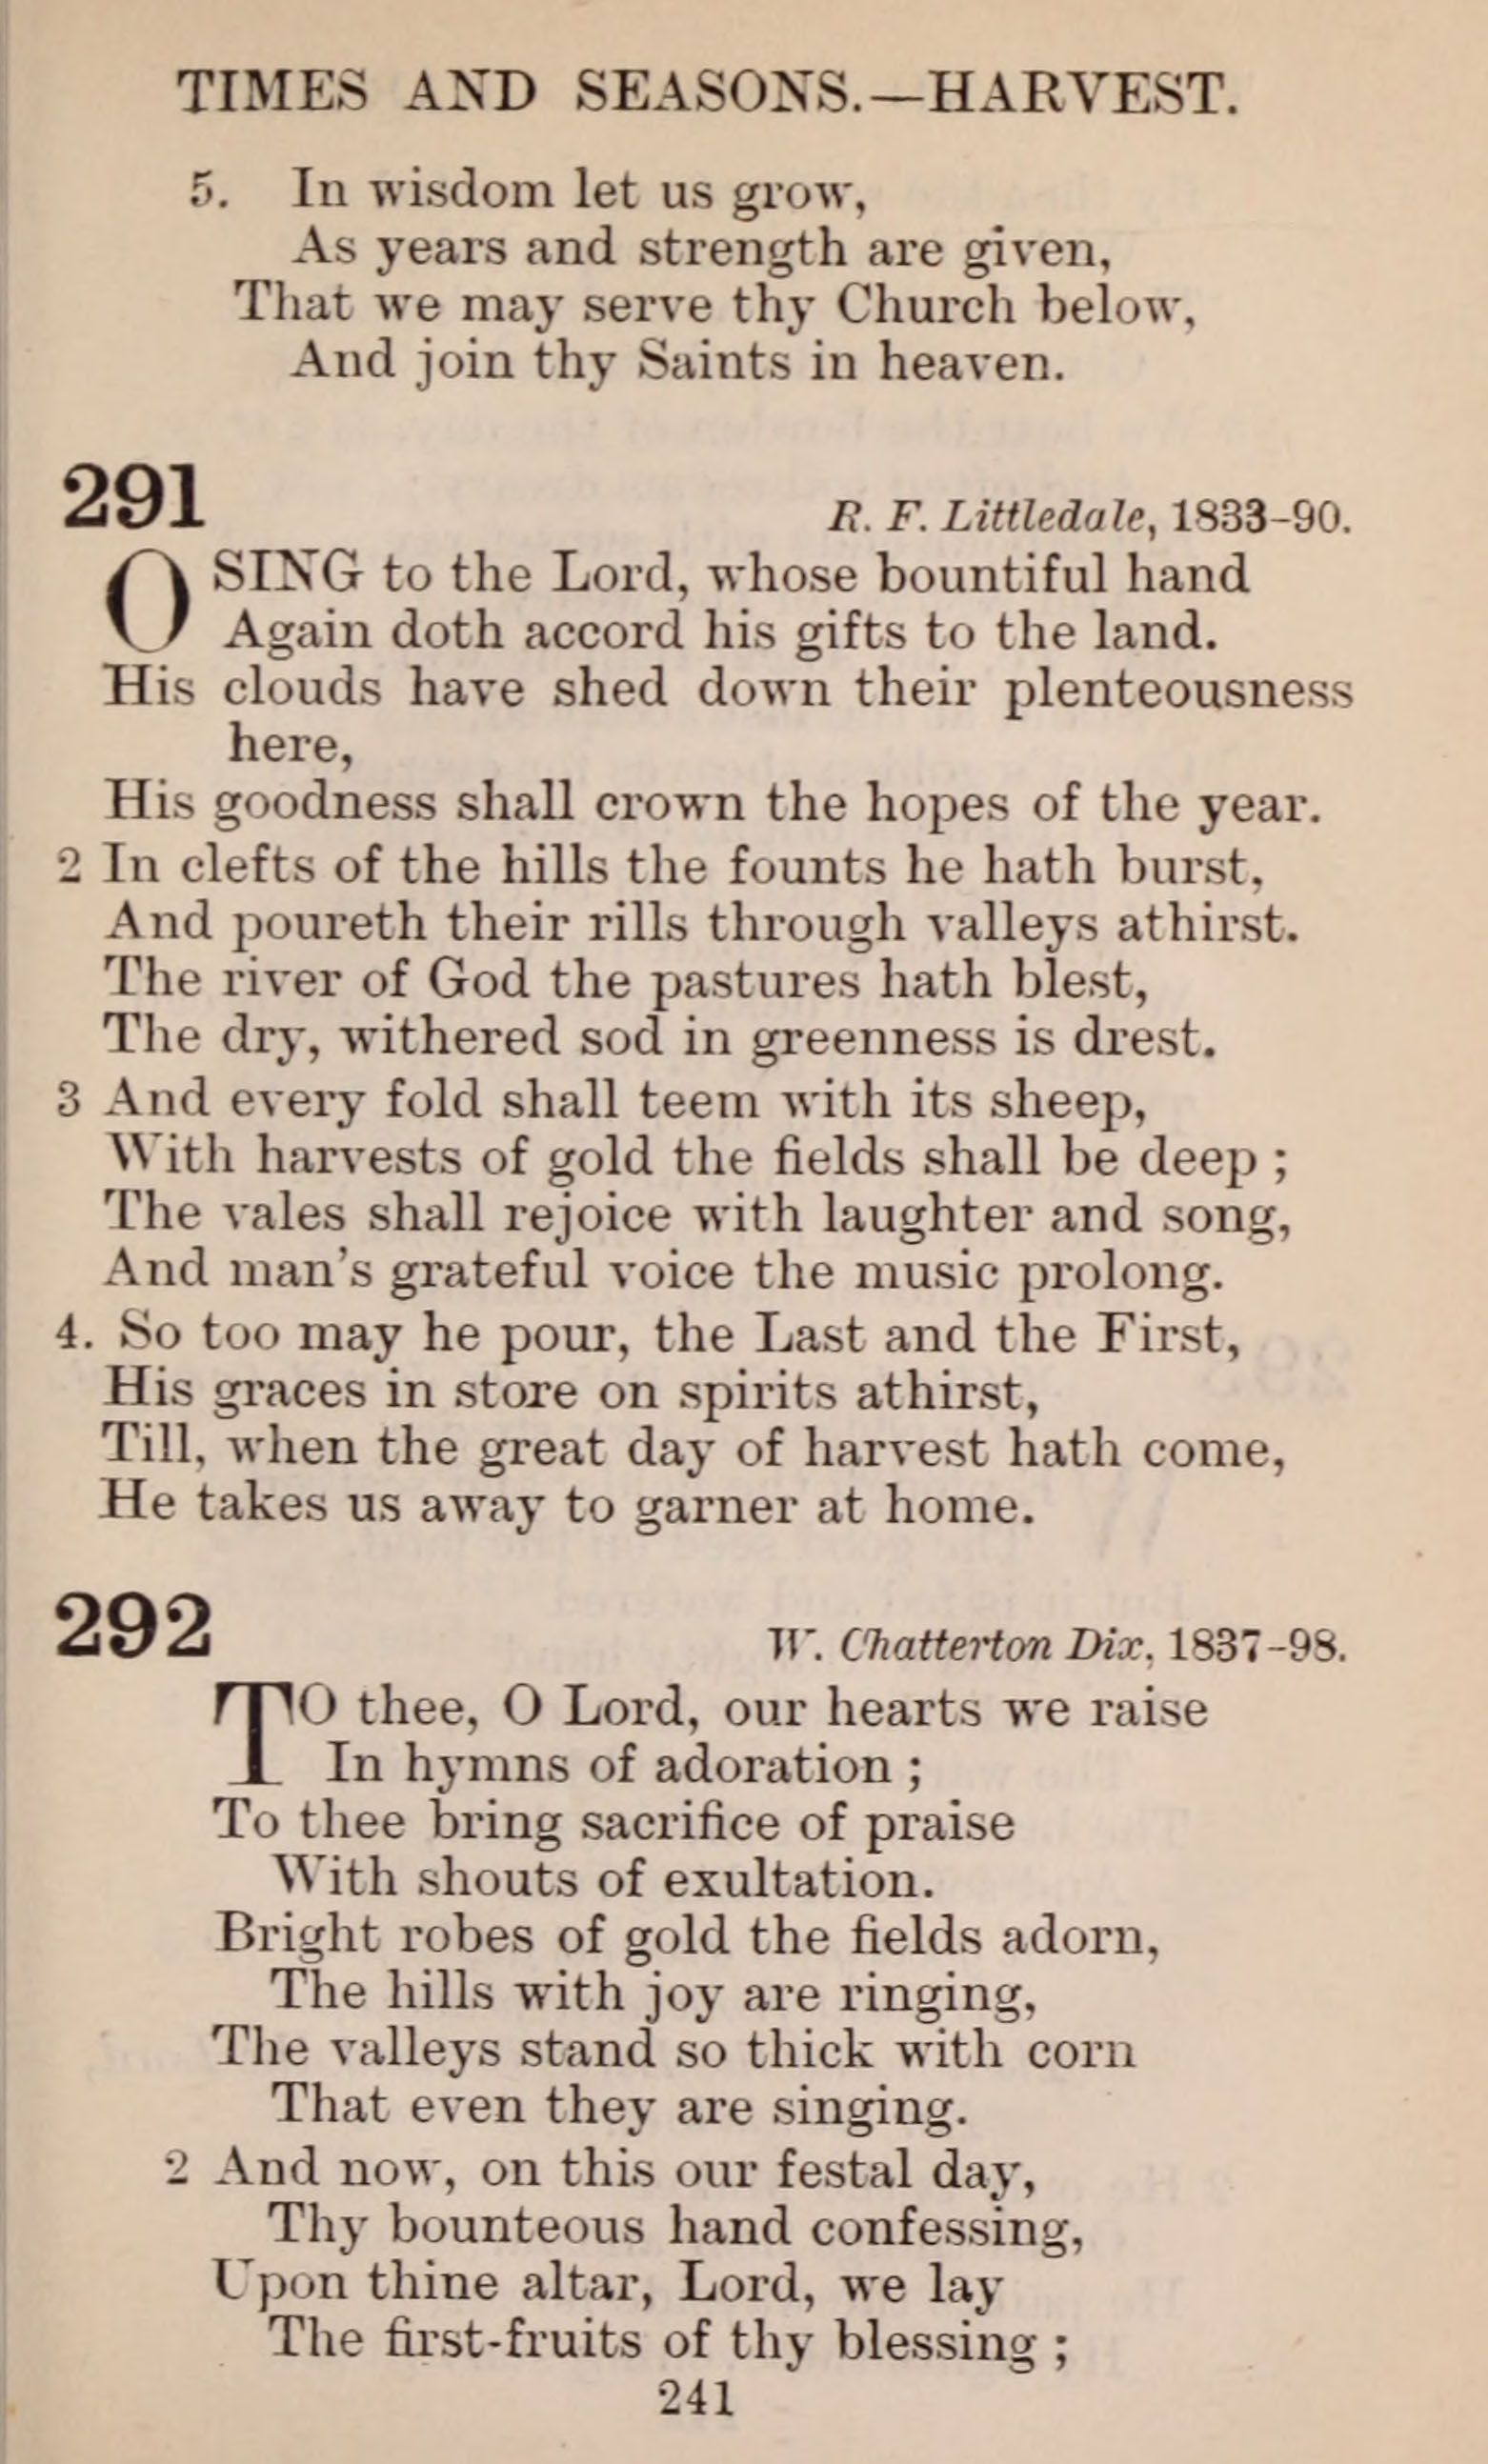 The English Hymnal page 241